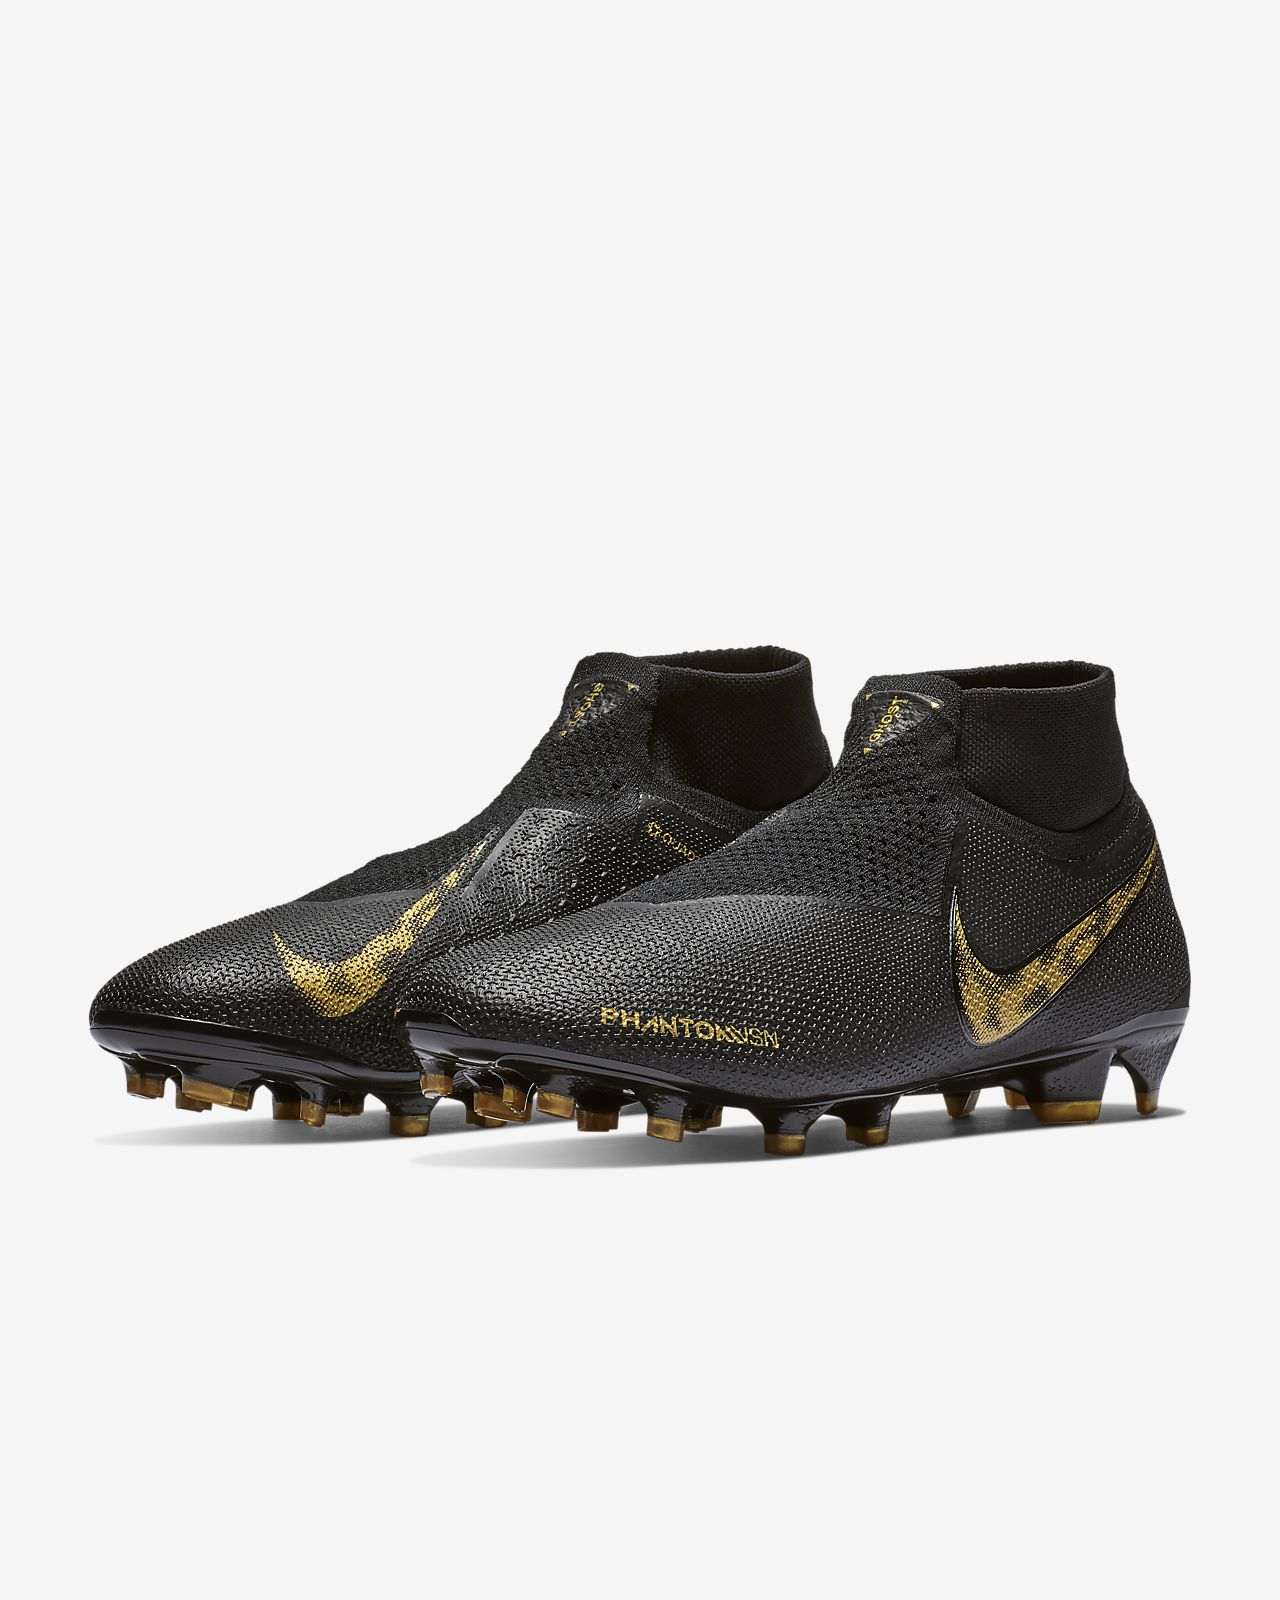 separation shoes 7cab8 76592 ... Nike Phantom Vision Elite Dynamic Fit FG Firm-Ground Soccer Cleat